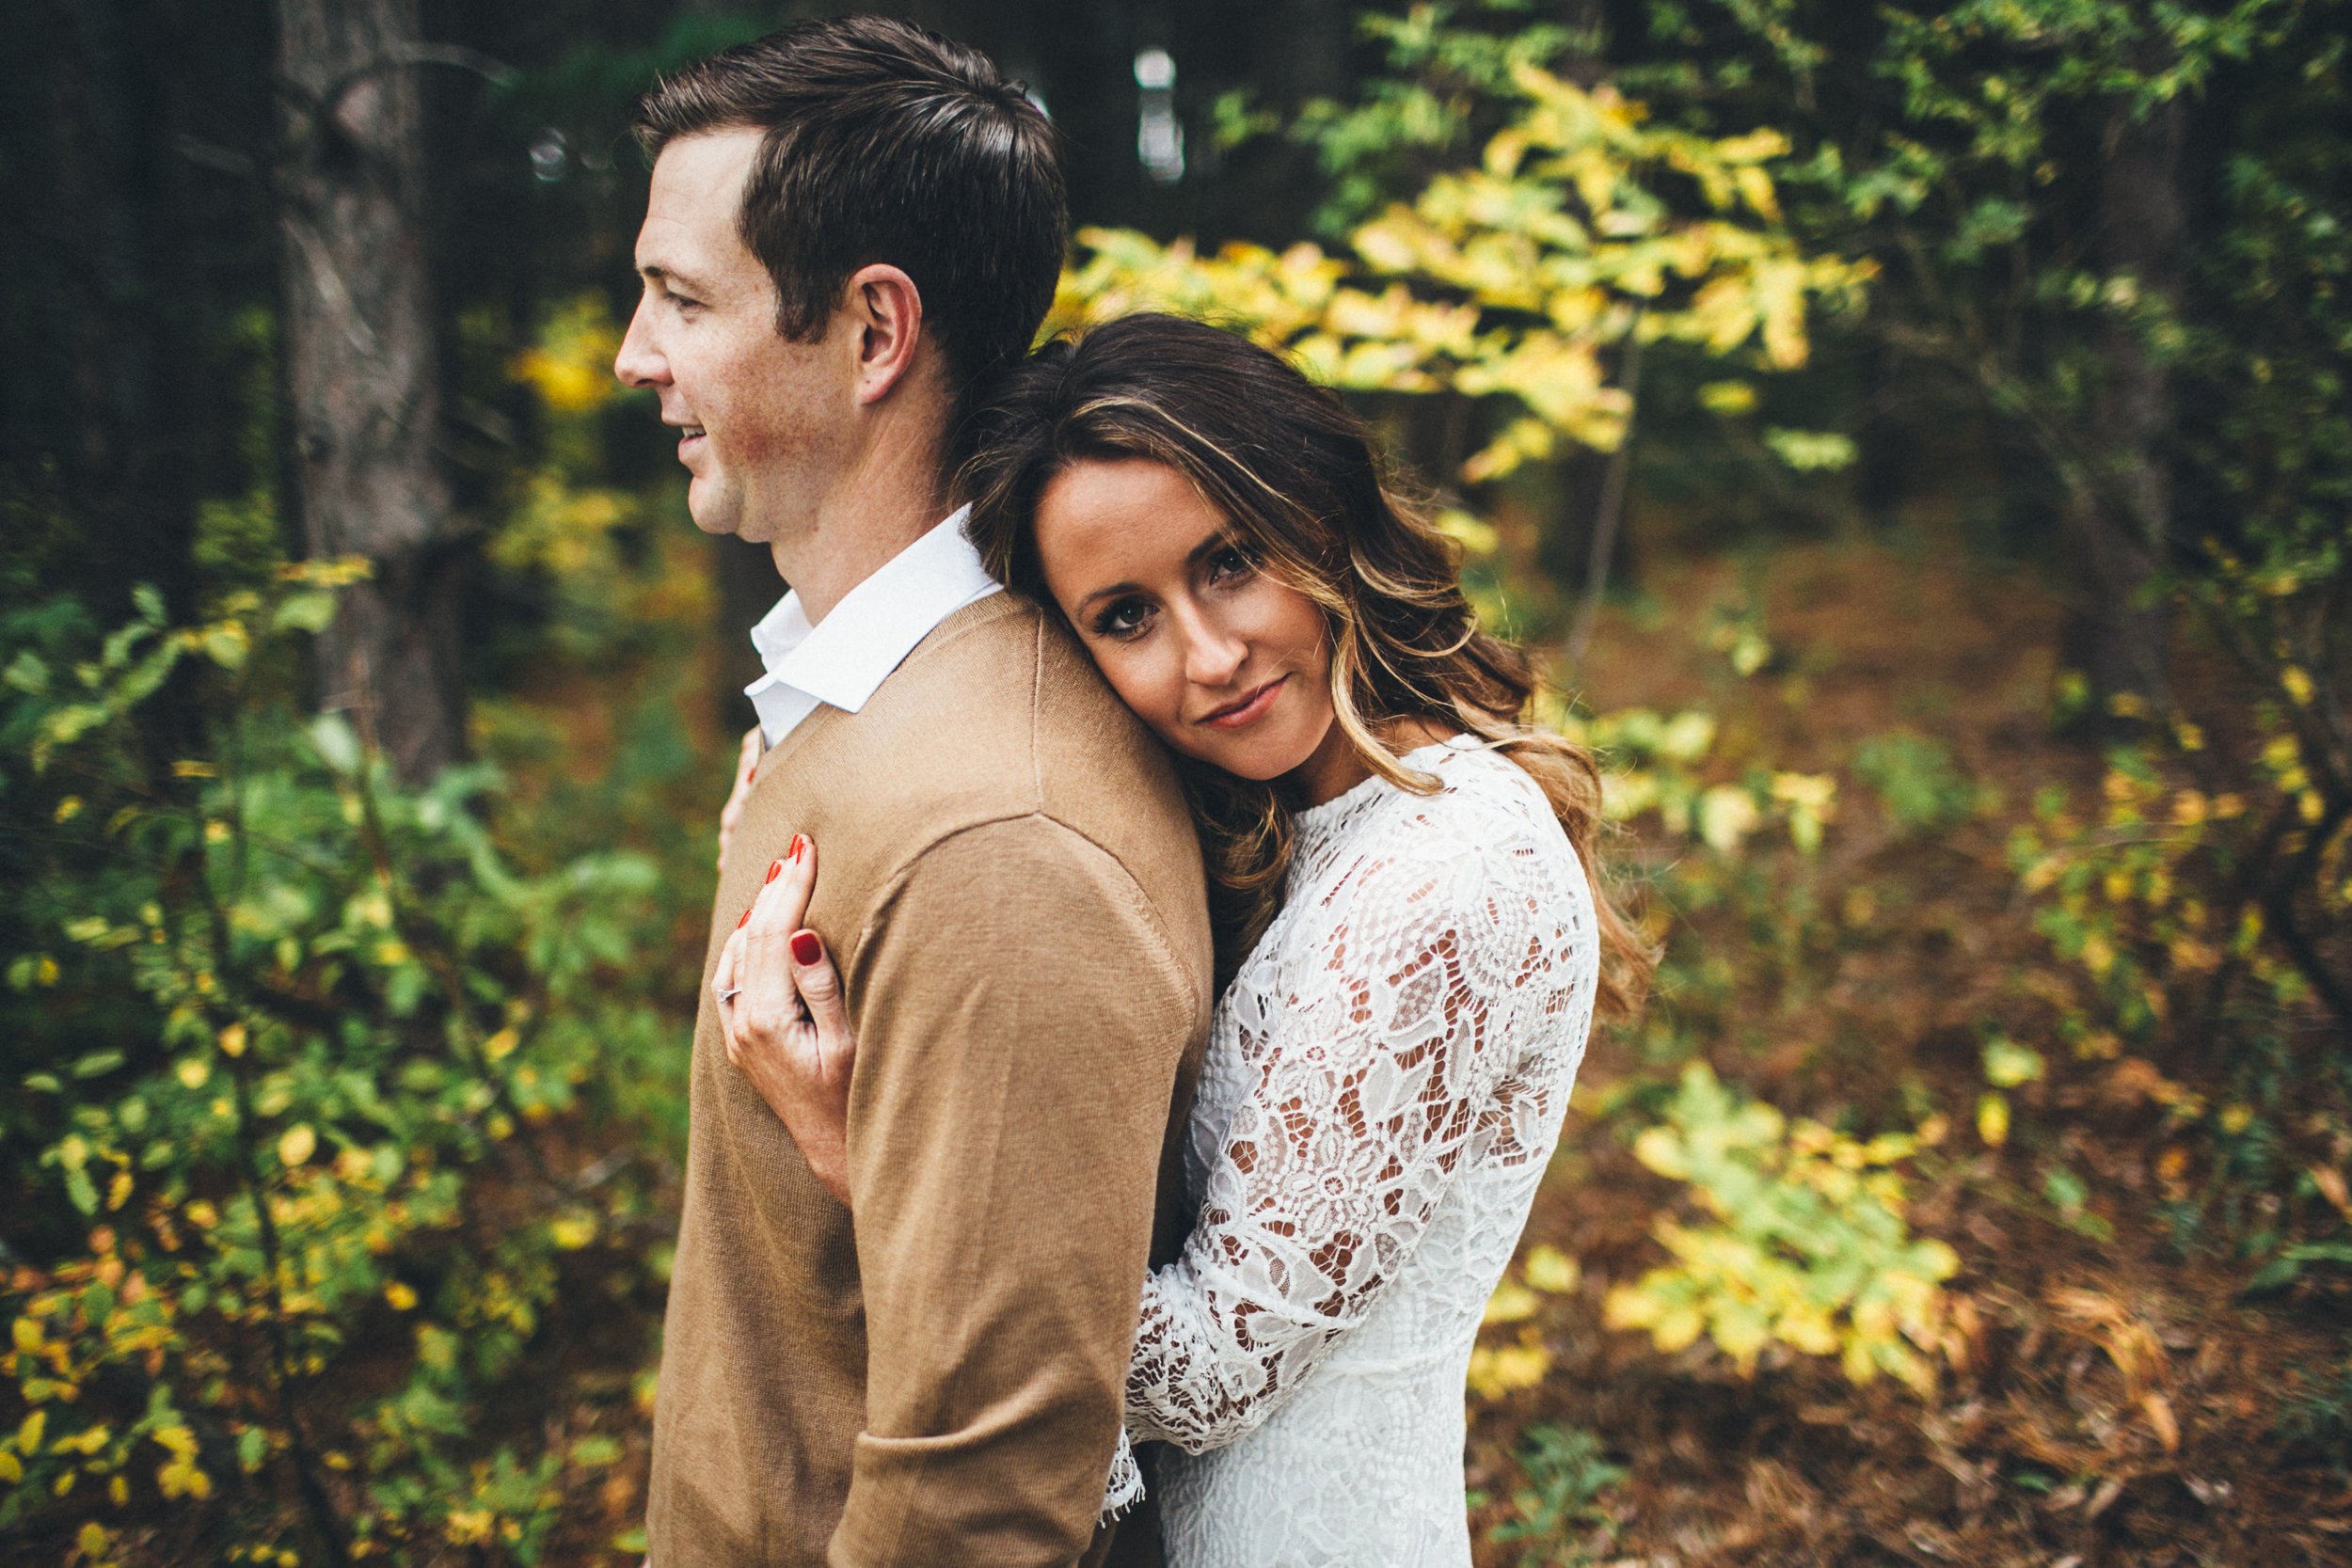 Carlie_Kevin_Northern_Michigan_Engagement_018.JPG